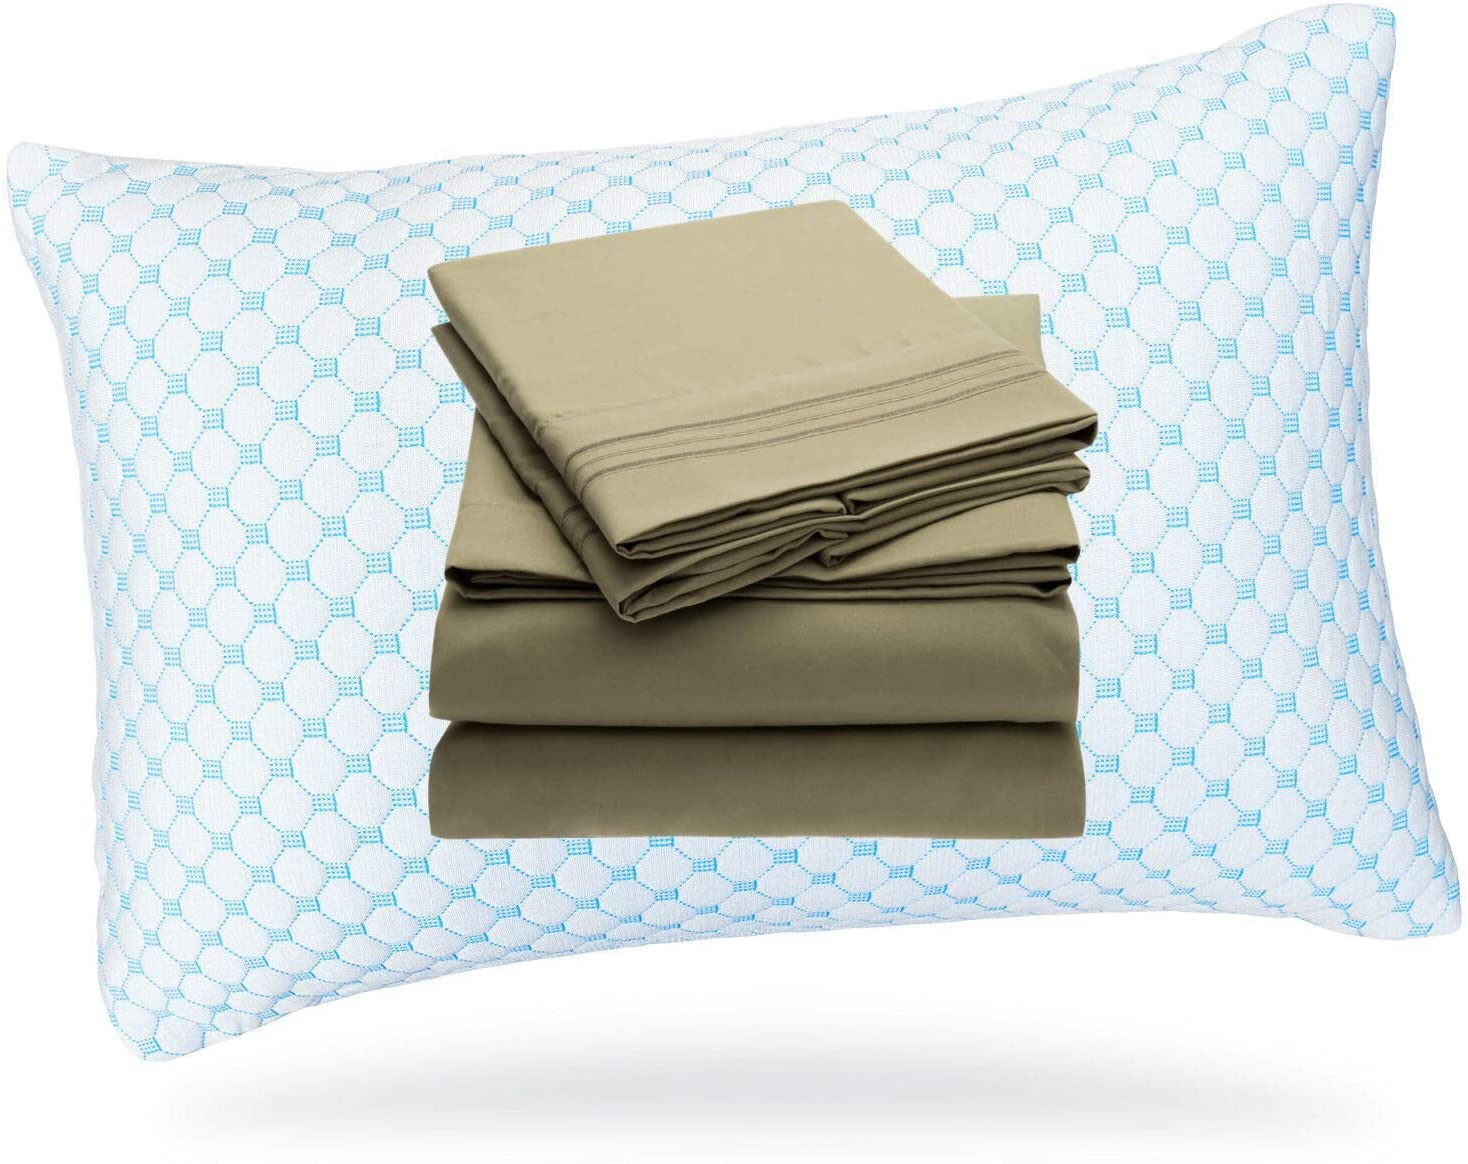 Memory Foam Cooling Pillows for Sleeping - Neck & Back Support | 4 Piece Soft Microfiber Bed Sheet Set Included | Queen or King | 1 or 2 Piece (Cool King Sage Green Sheet, 1 Cooling Queen Pillow)